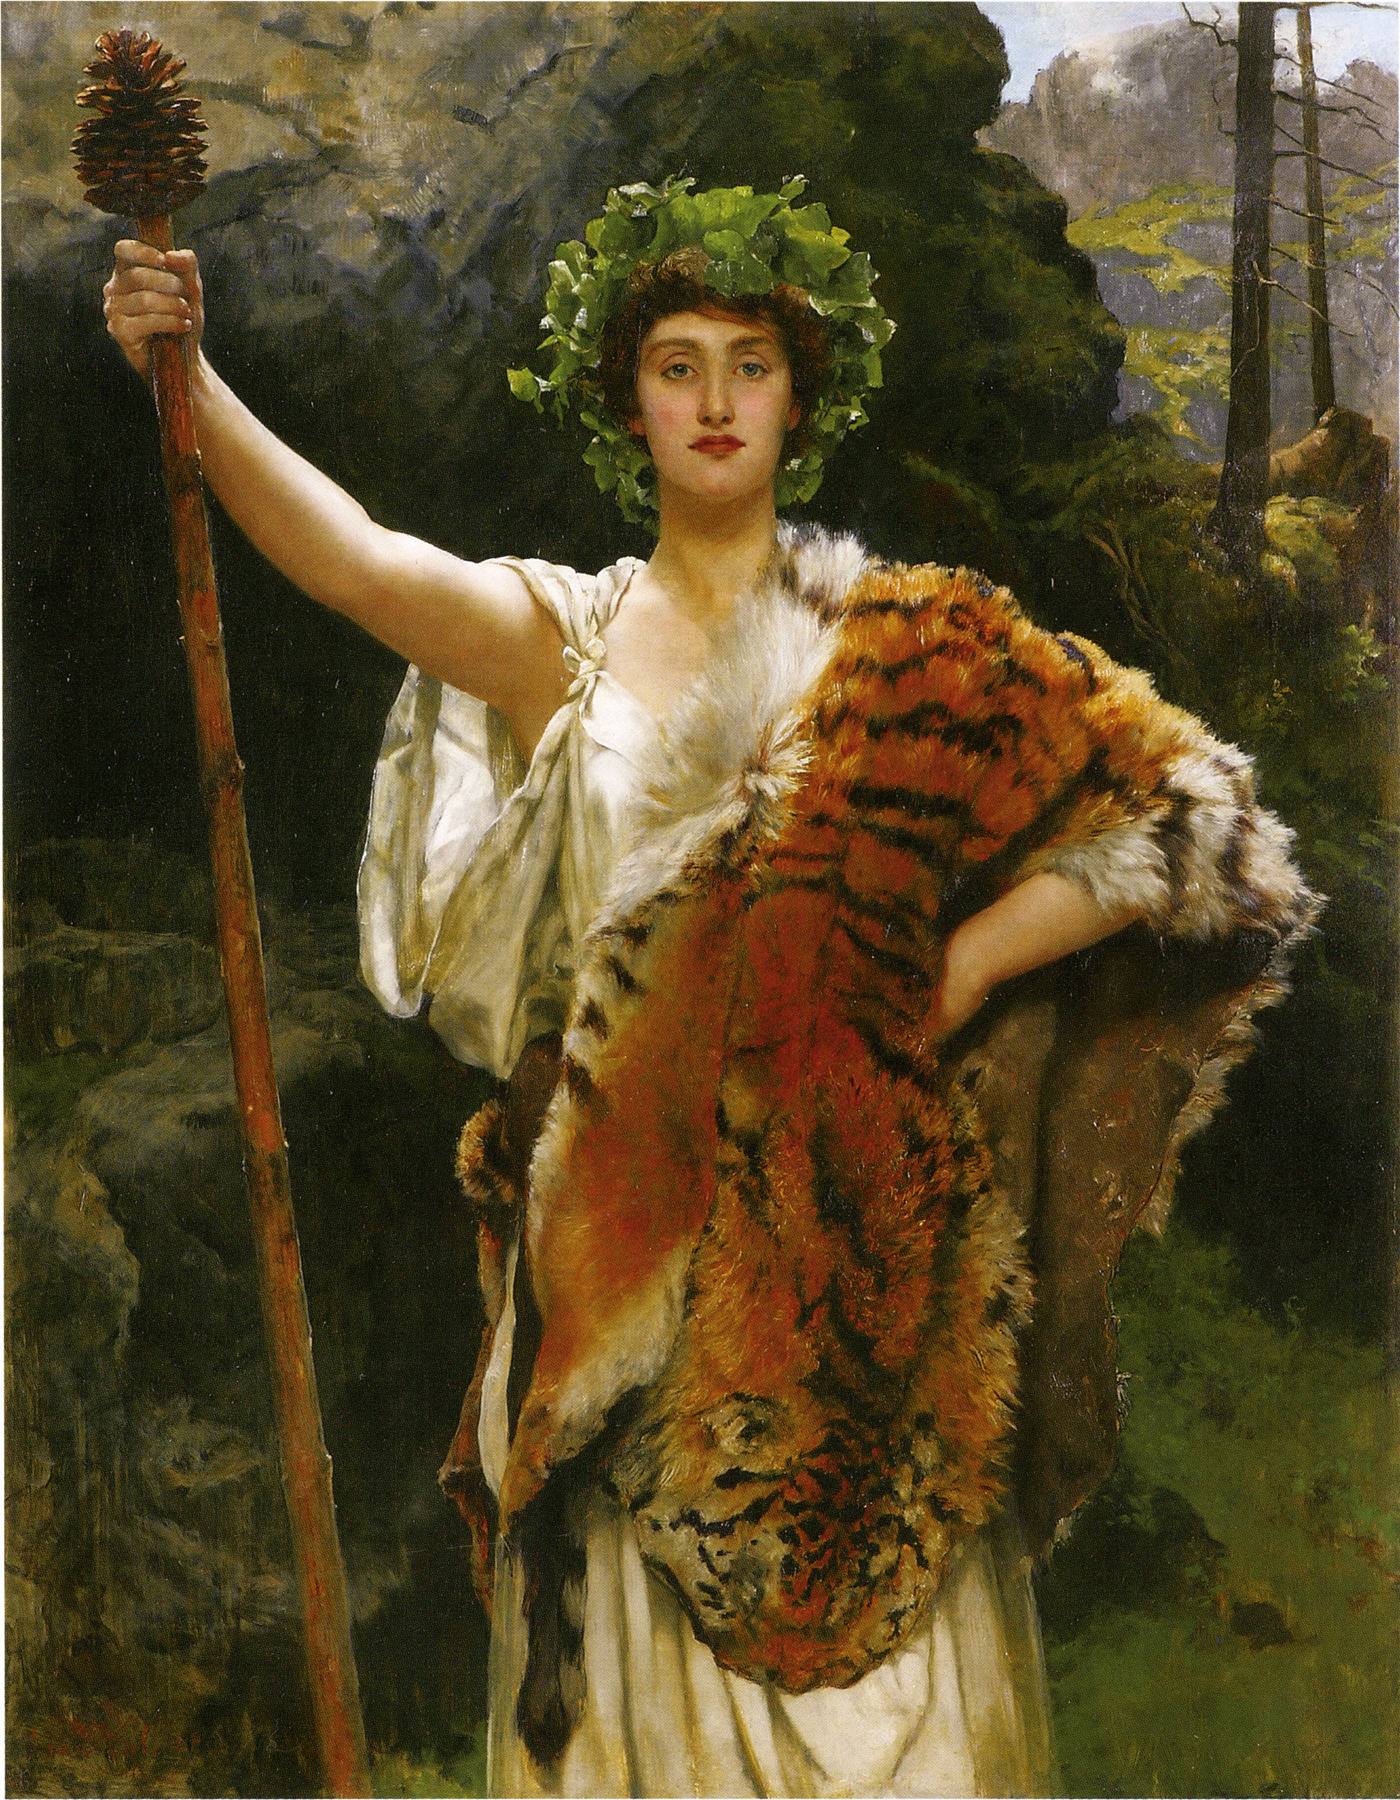 The Priestess of Bacchus :: John Collier - Antique beauties in art and painting ôîòî